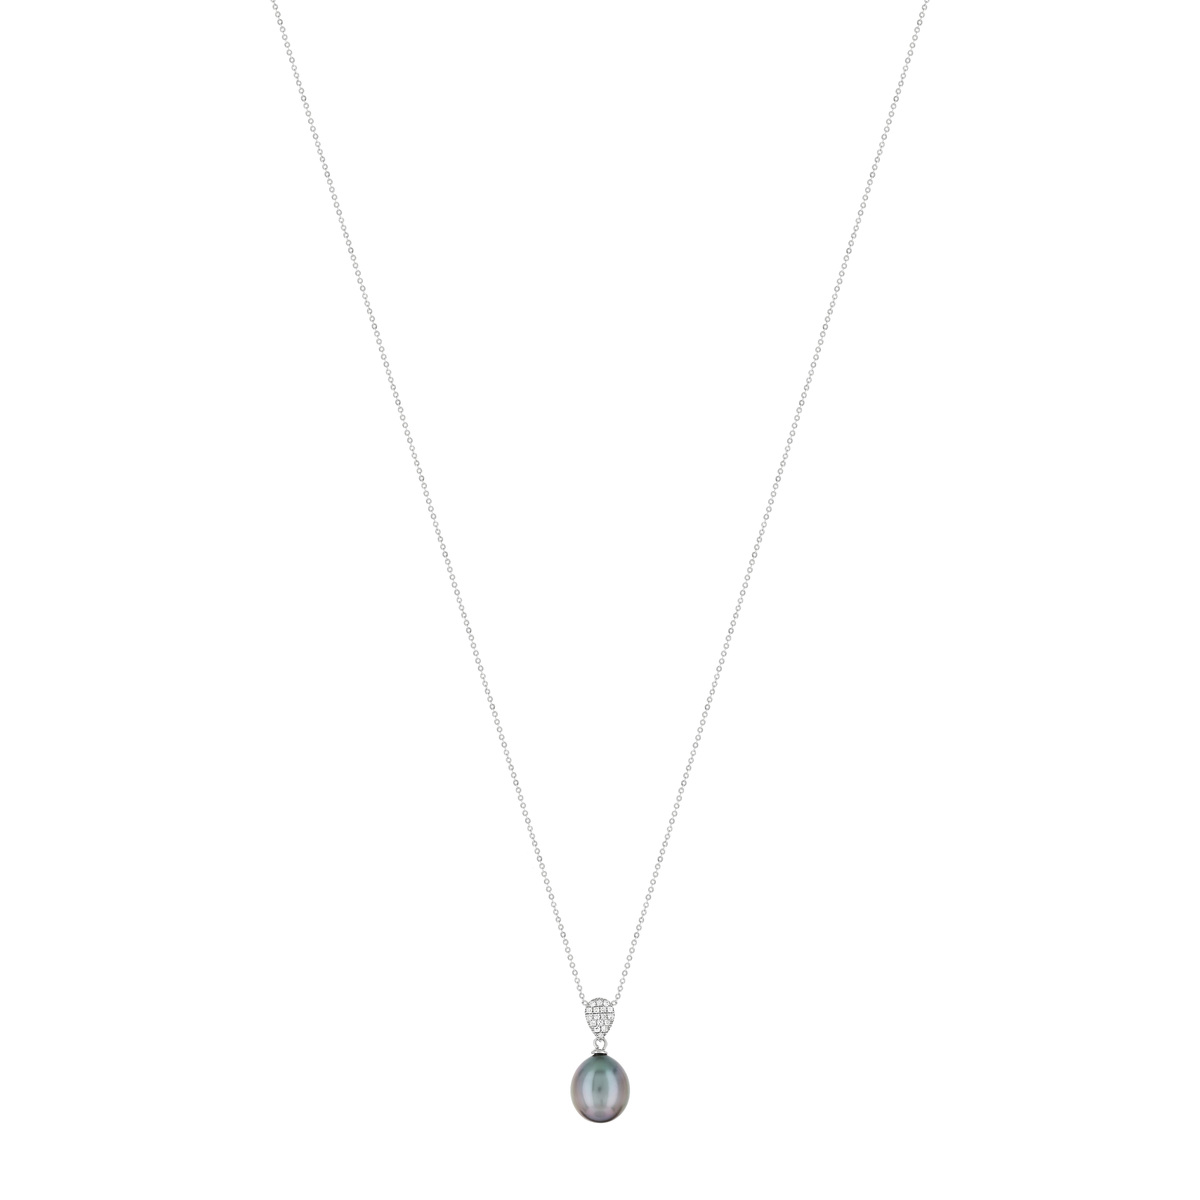 Collier or blanc 750 perle culture tahiti diamant - vue 1